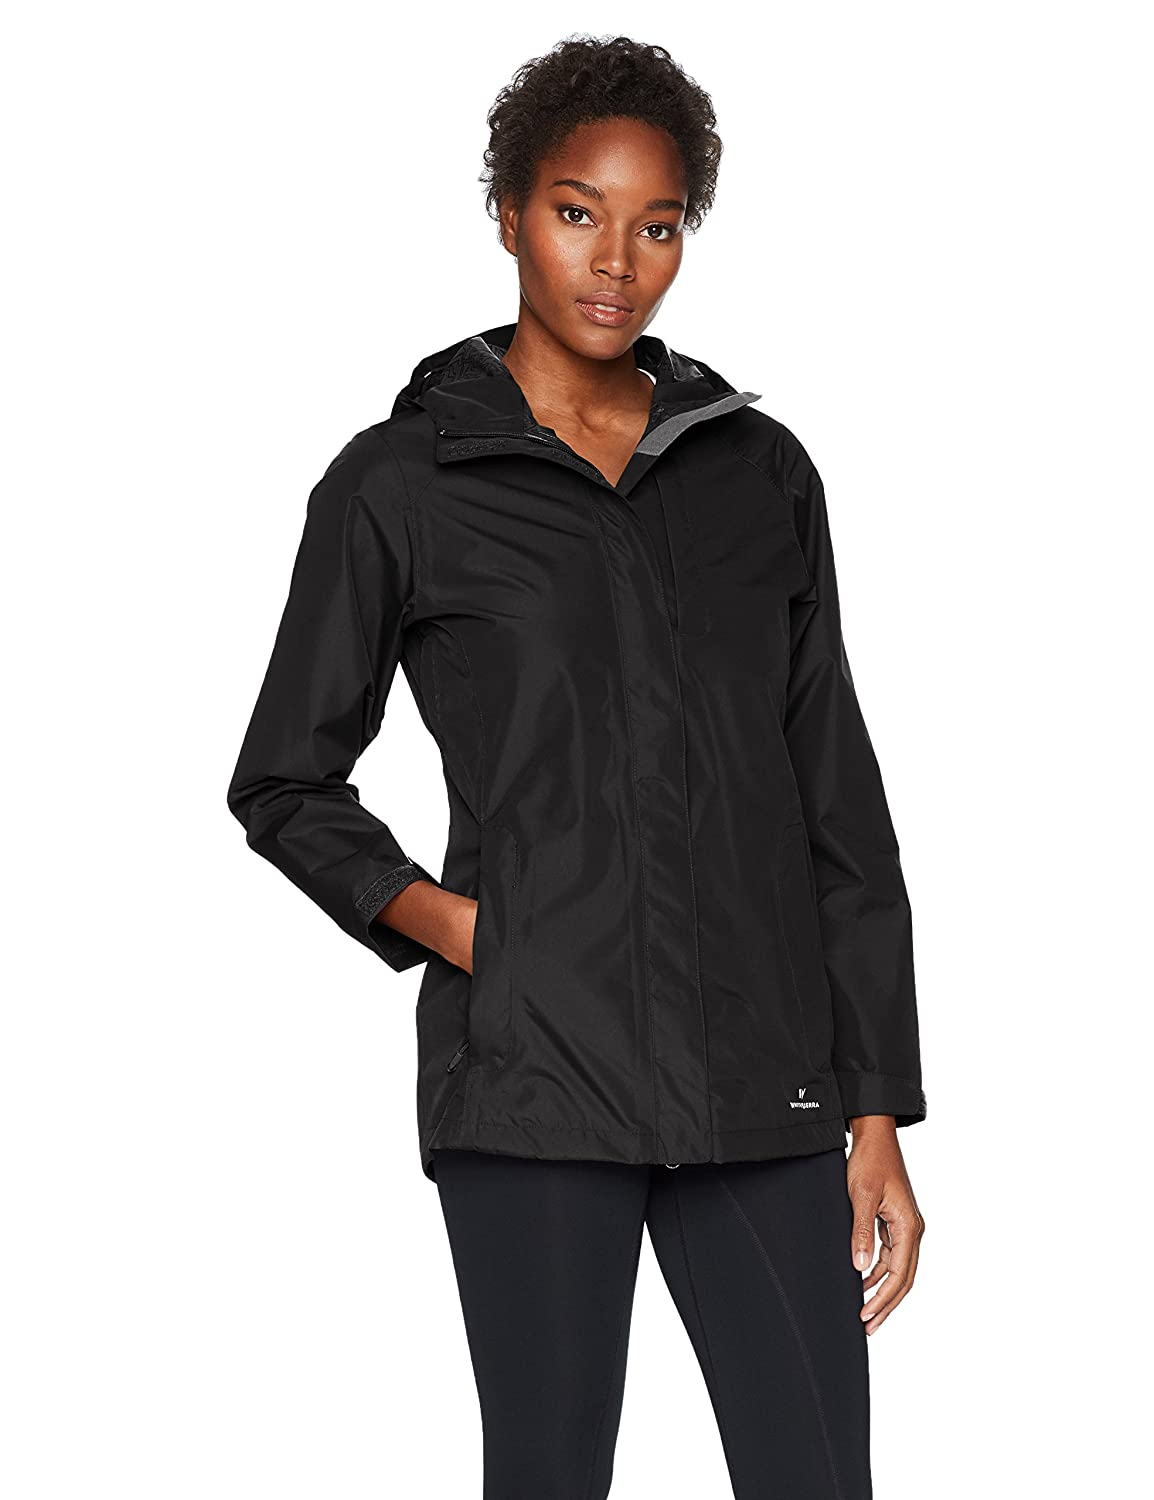 White Sierra Women's Sierra Guide 2.5 Layer Rain Jacket